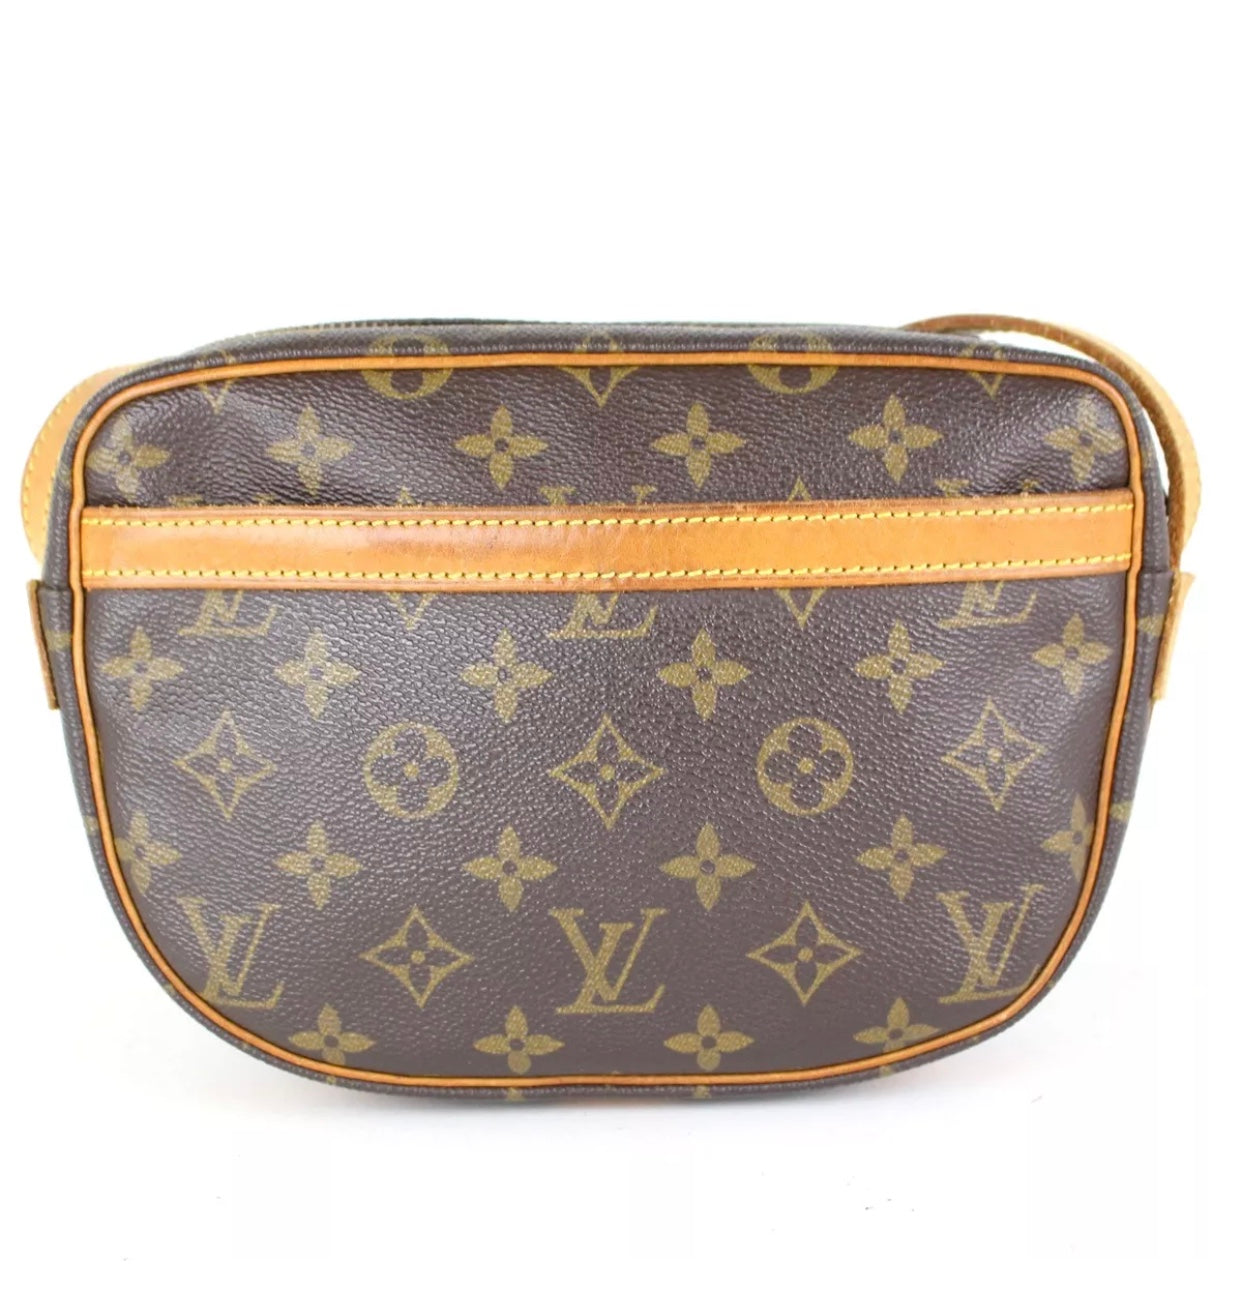 LOUIS VUITTON Monogram Juene Fille PM Crossbody Bag